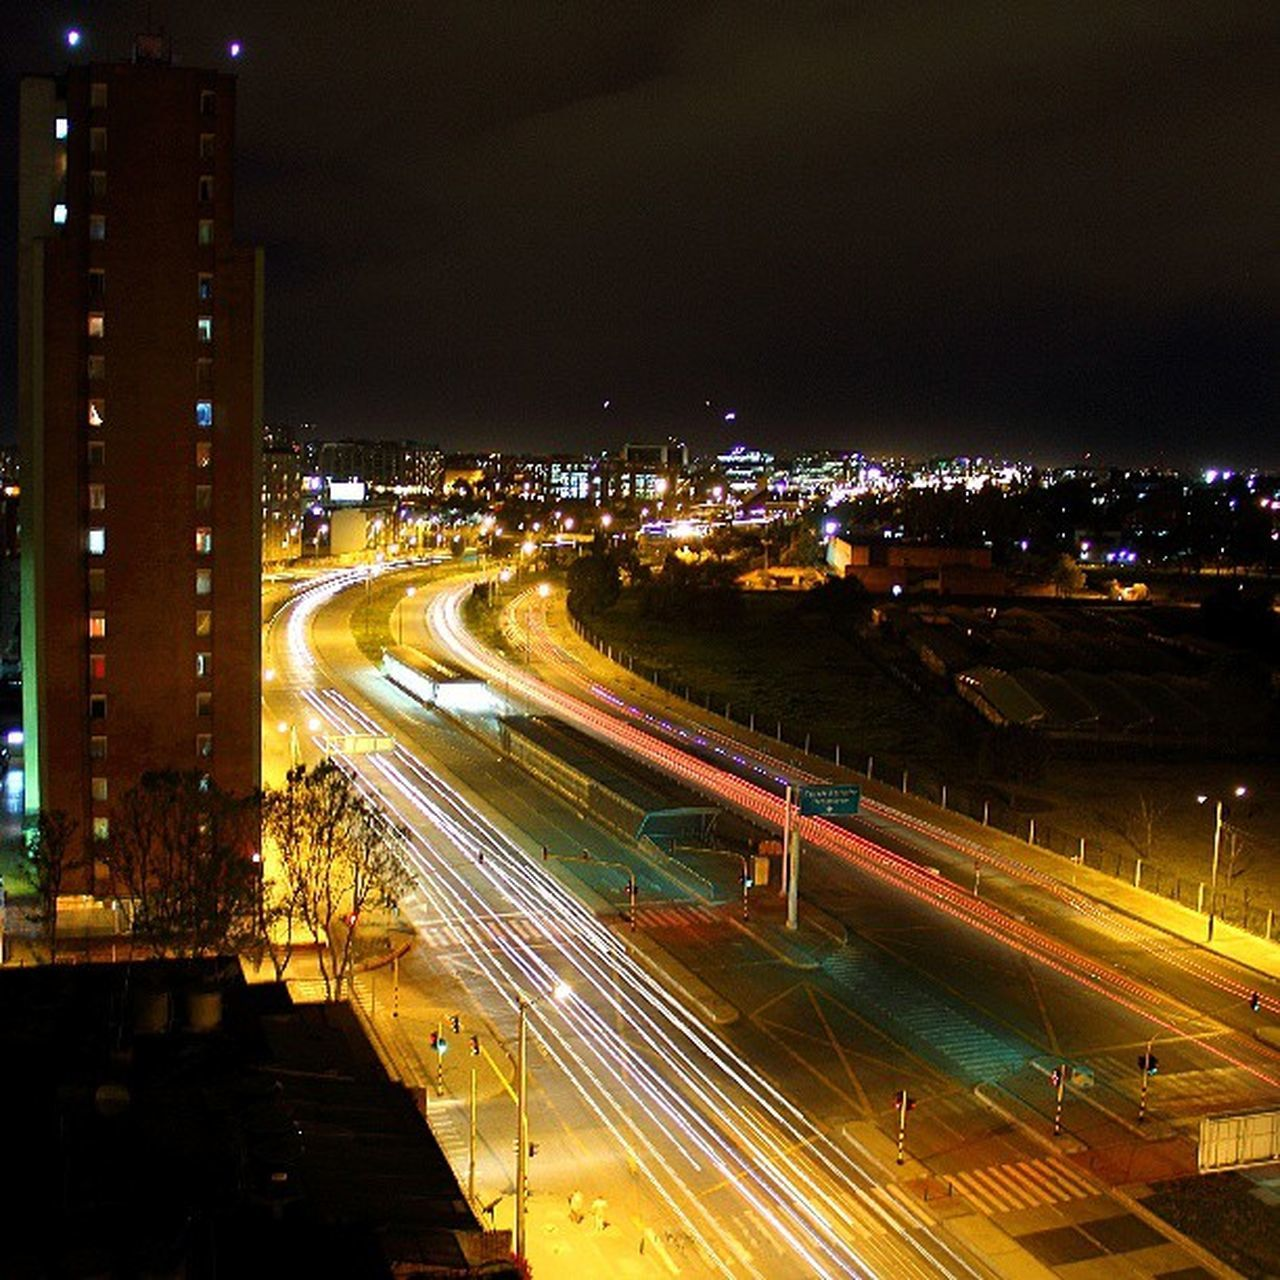 illuminated, night, light trail, speed, long exposure, transportation, motion, traffic, high street, city, road, high angle view, street light, city life, street, no people, outdoors, building exterior, built structure, architecture, cityscape, urban scene, sky